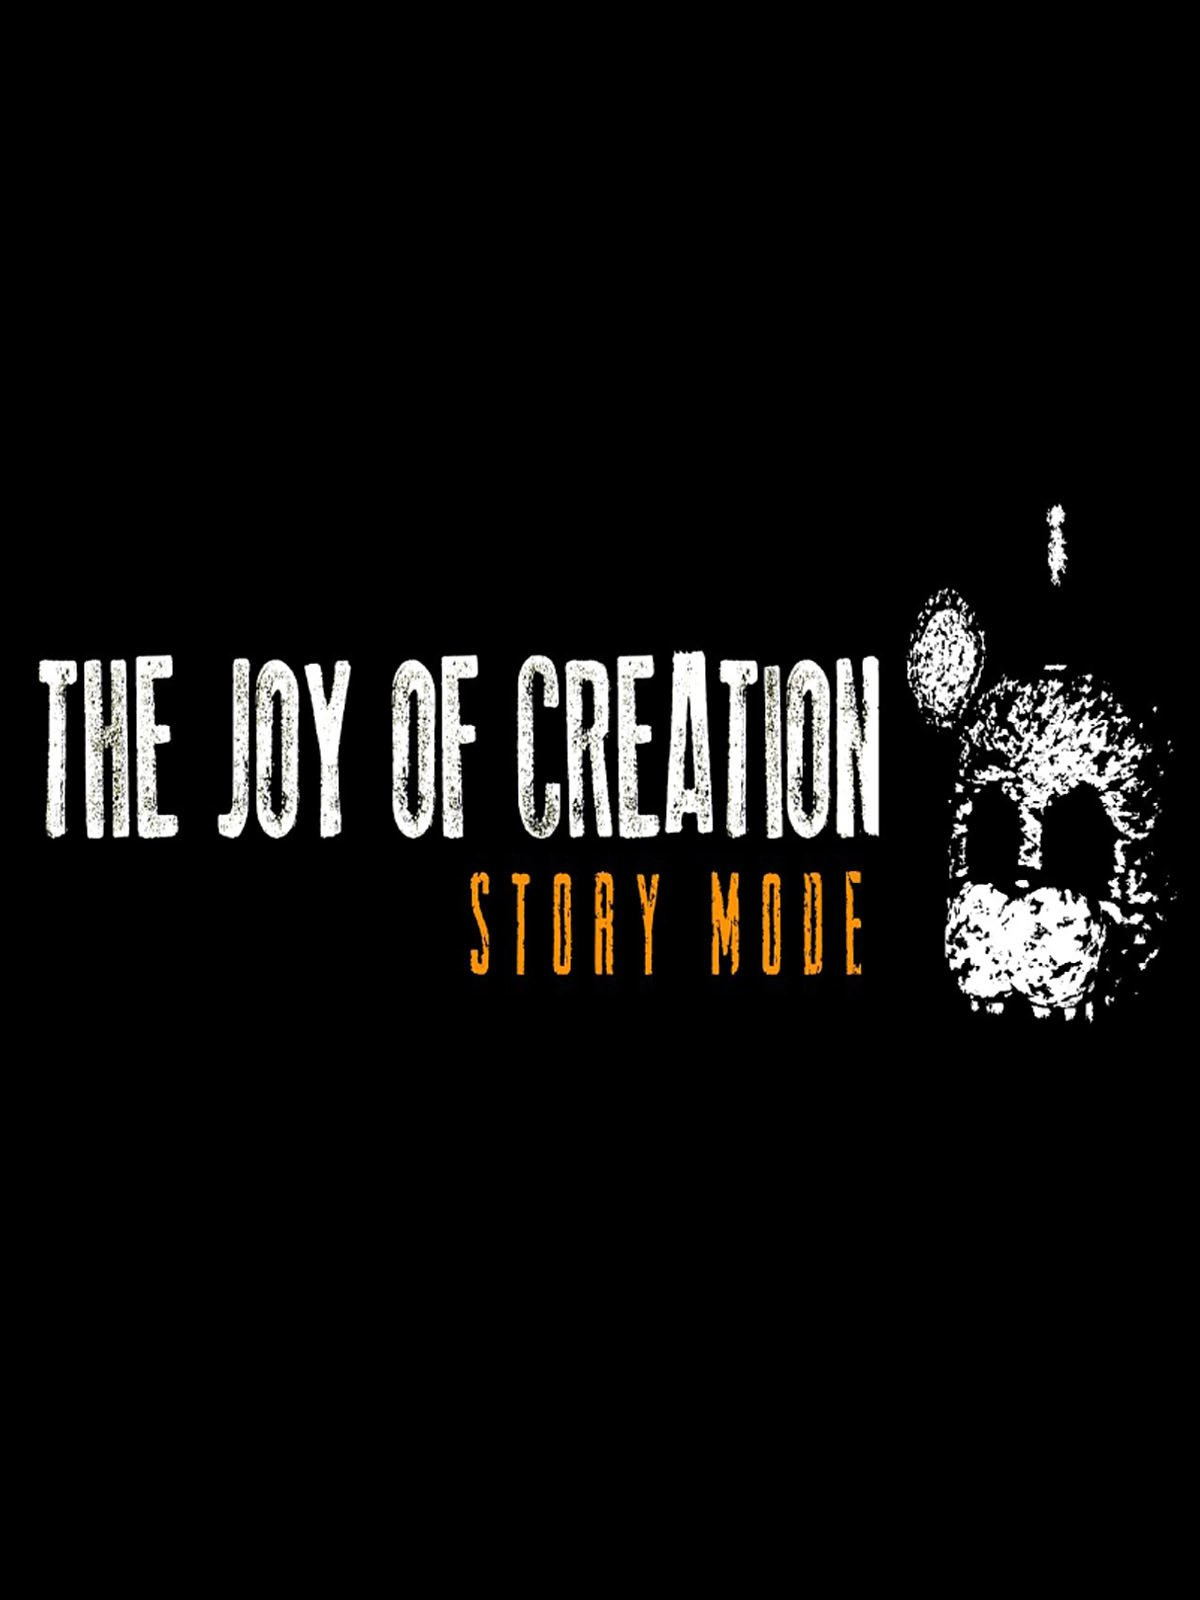 Clip: The Joy Of Creation Story Mode